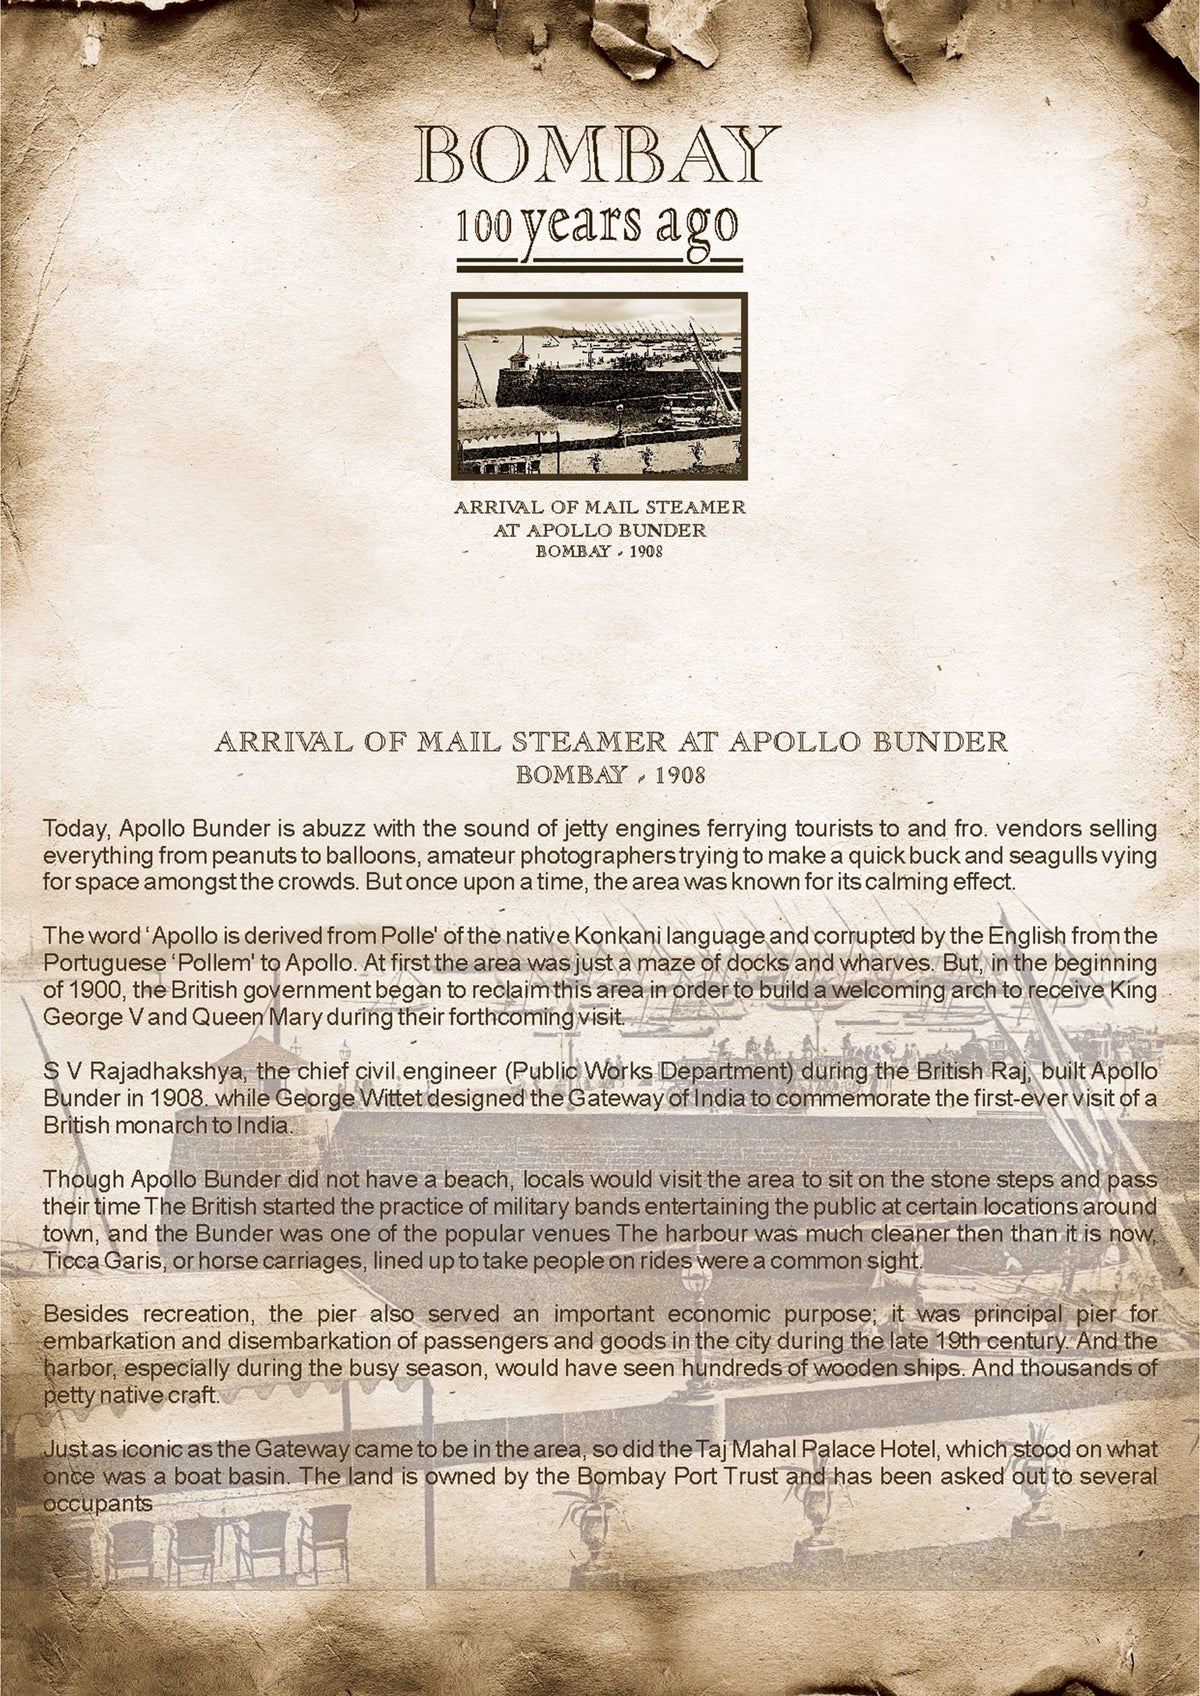 Arrival of Mail Steamer at Apollo Bunder